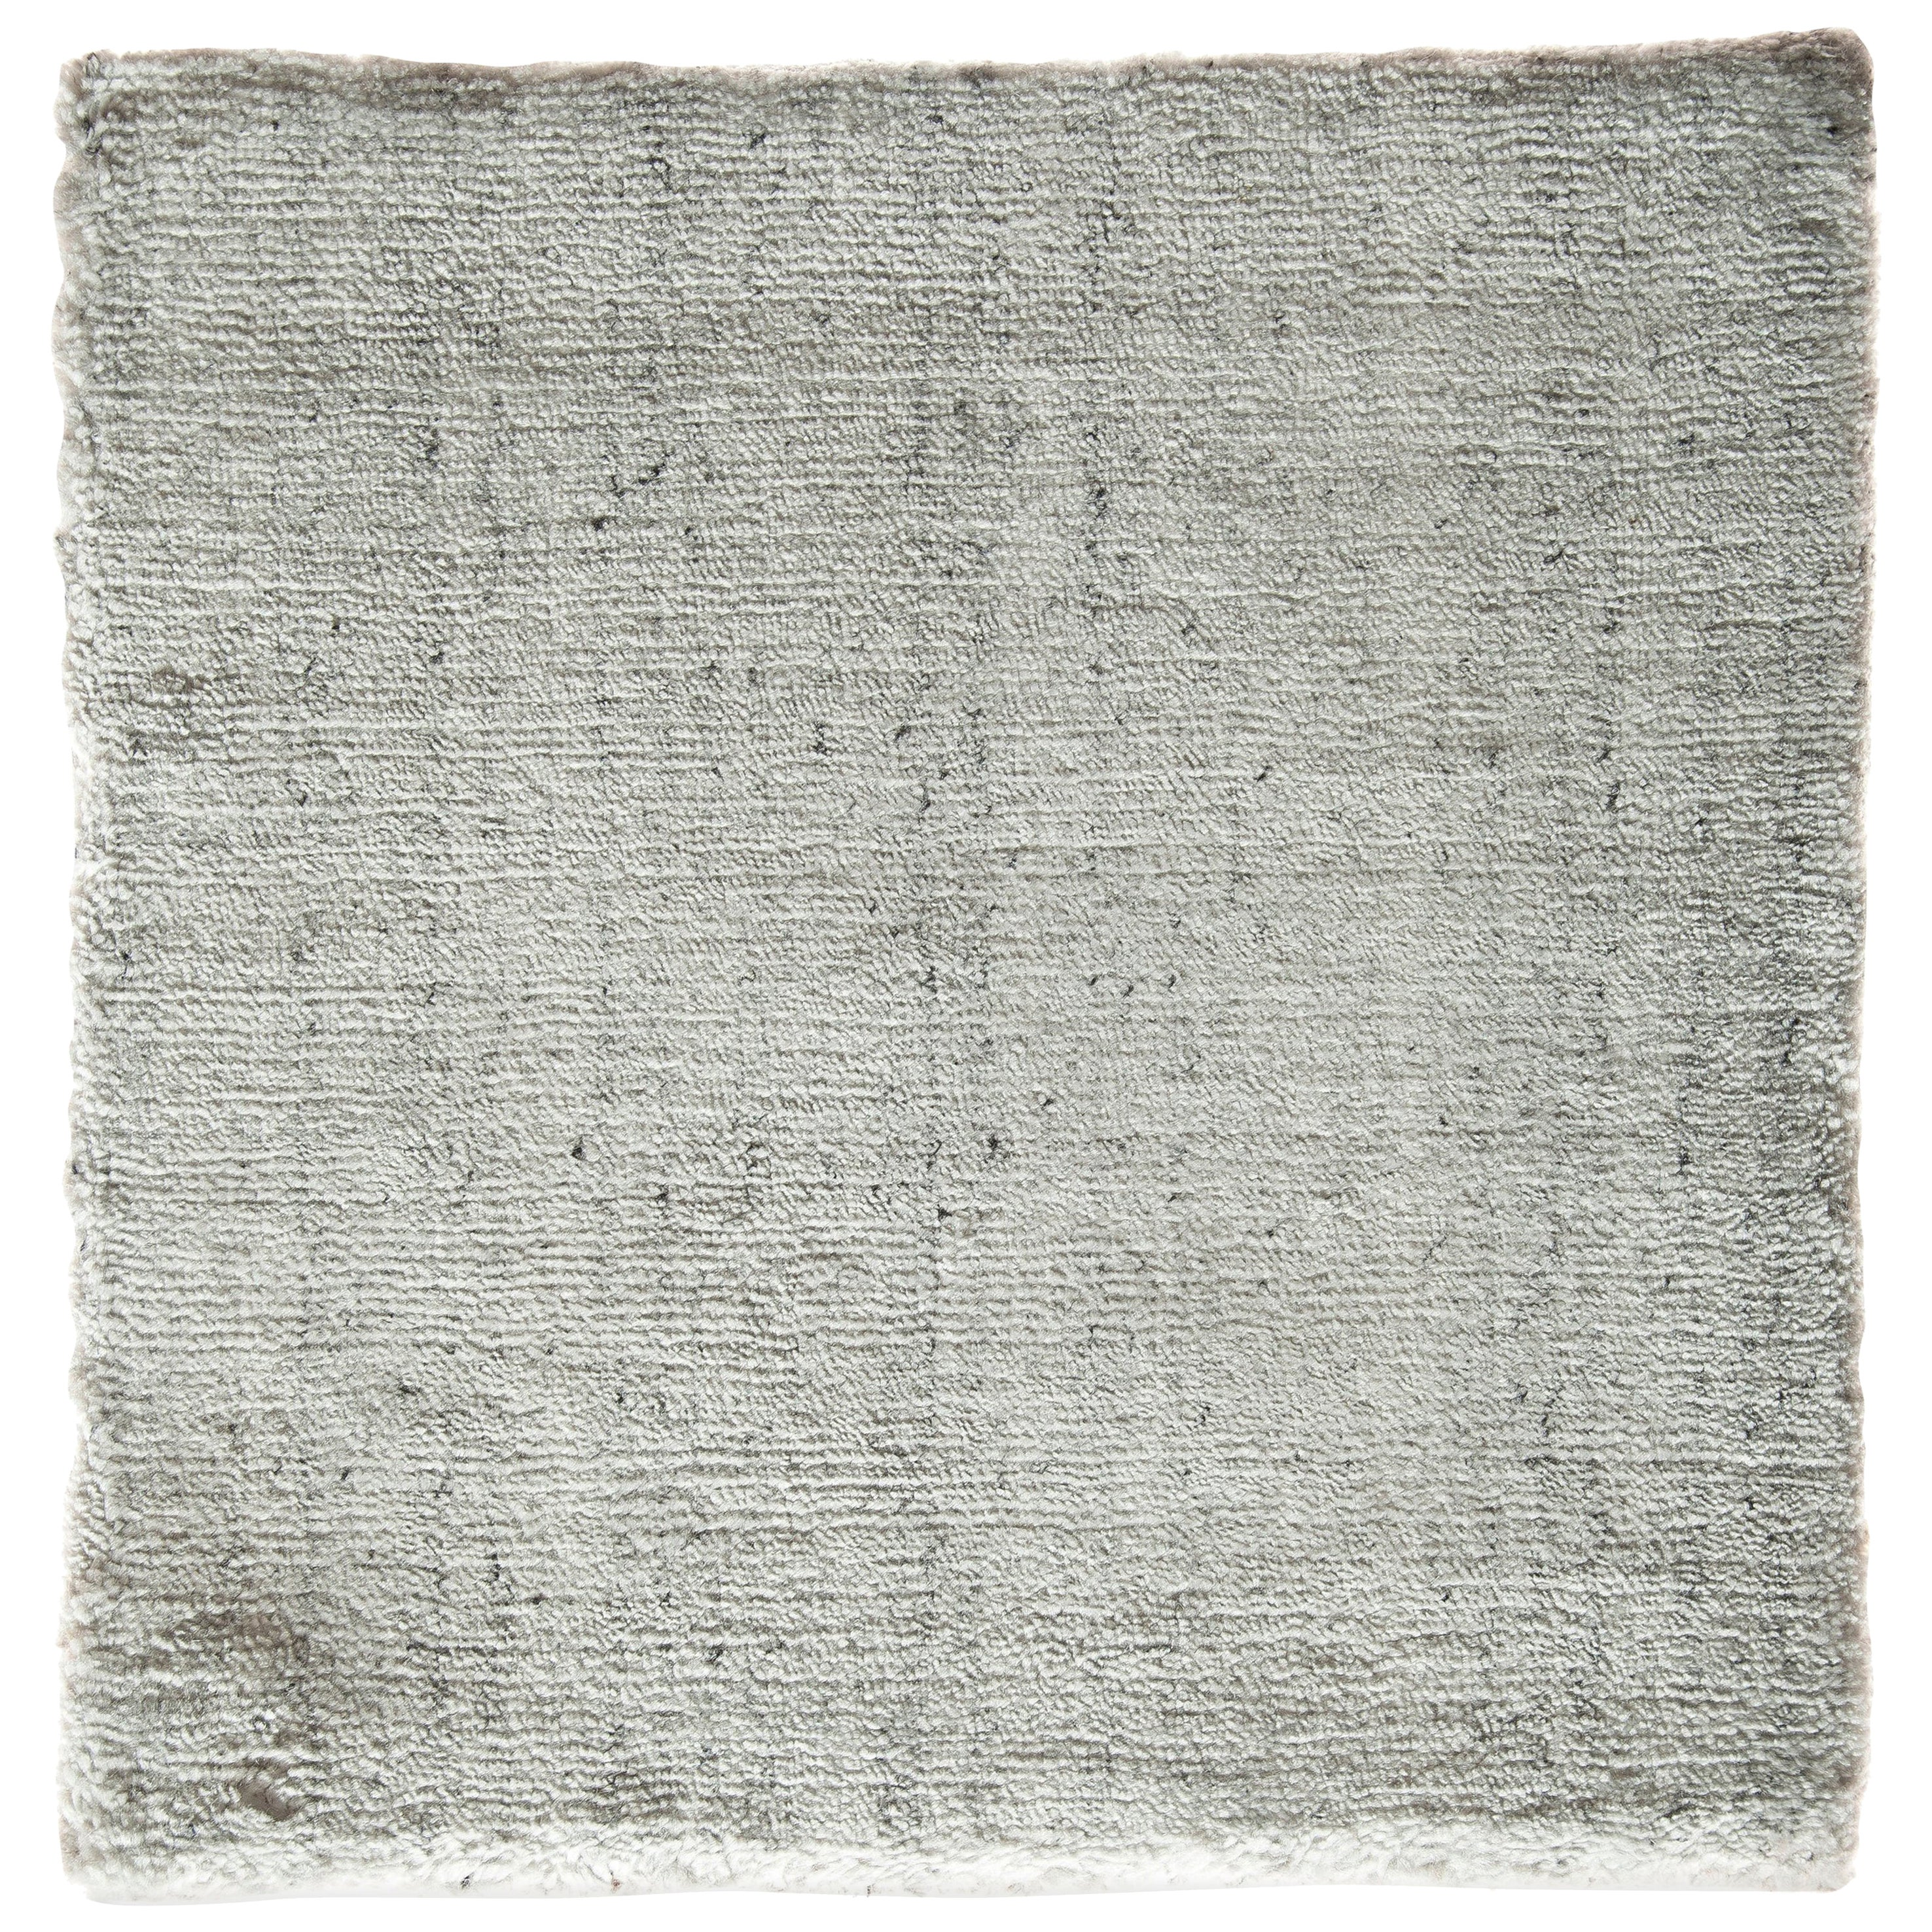 White, Silver, and Slate Spotted Bamboo Silk Hand-Loomed Contemporary Square Rug